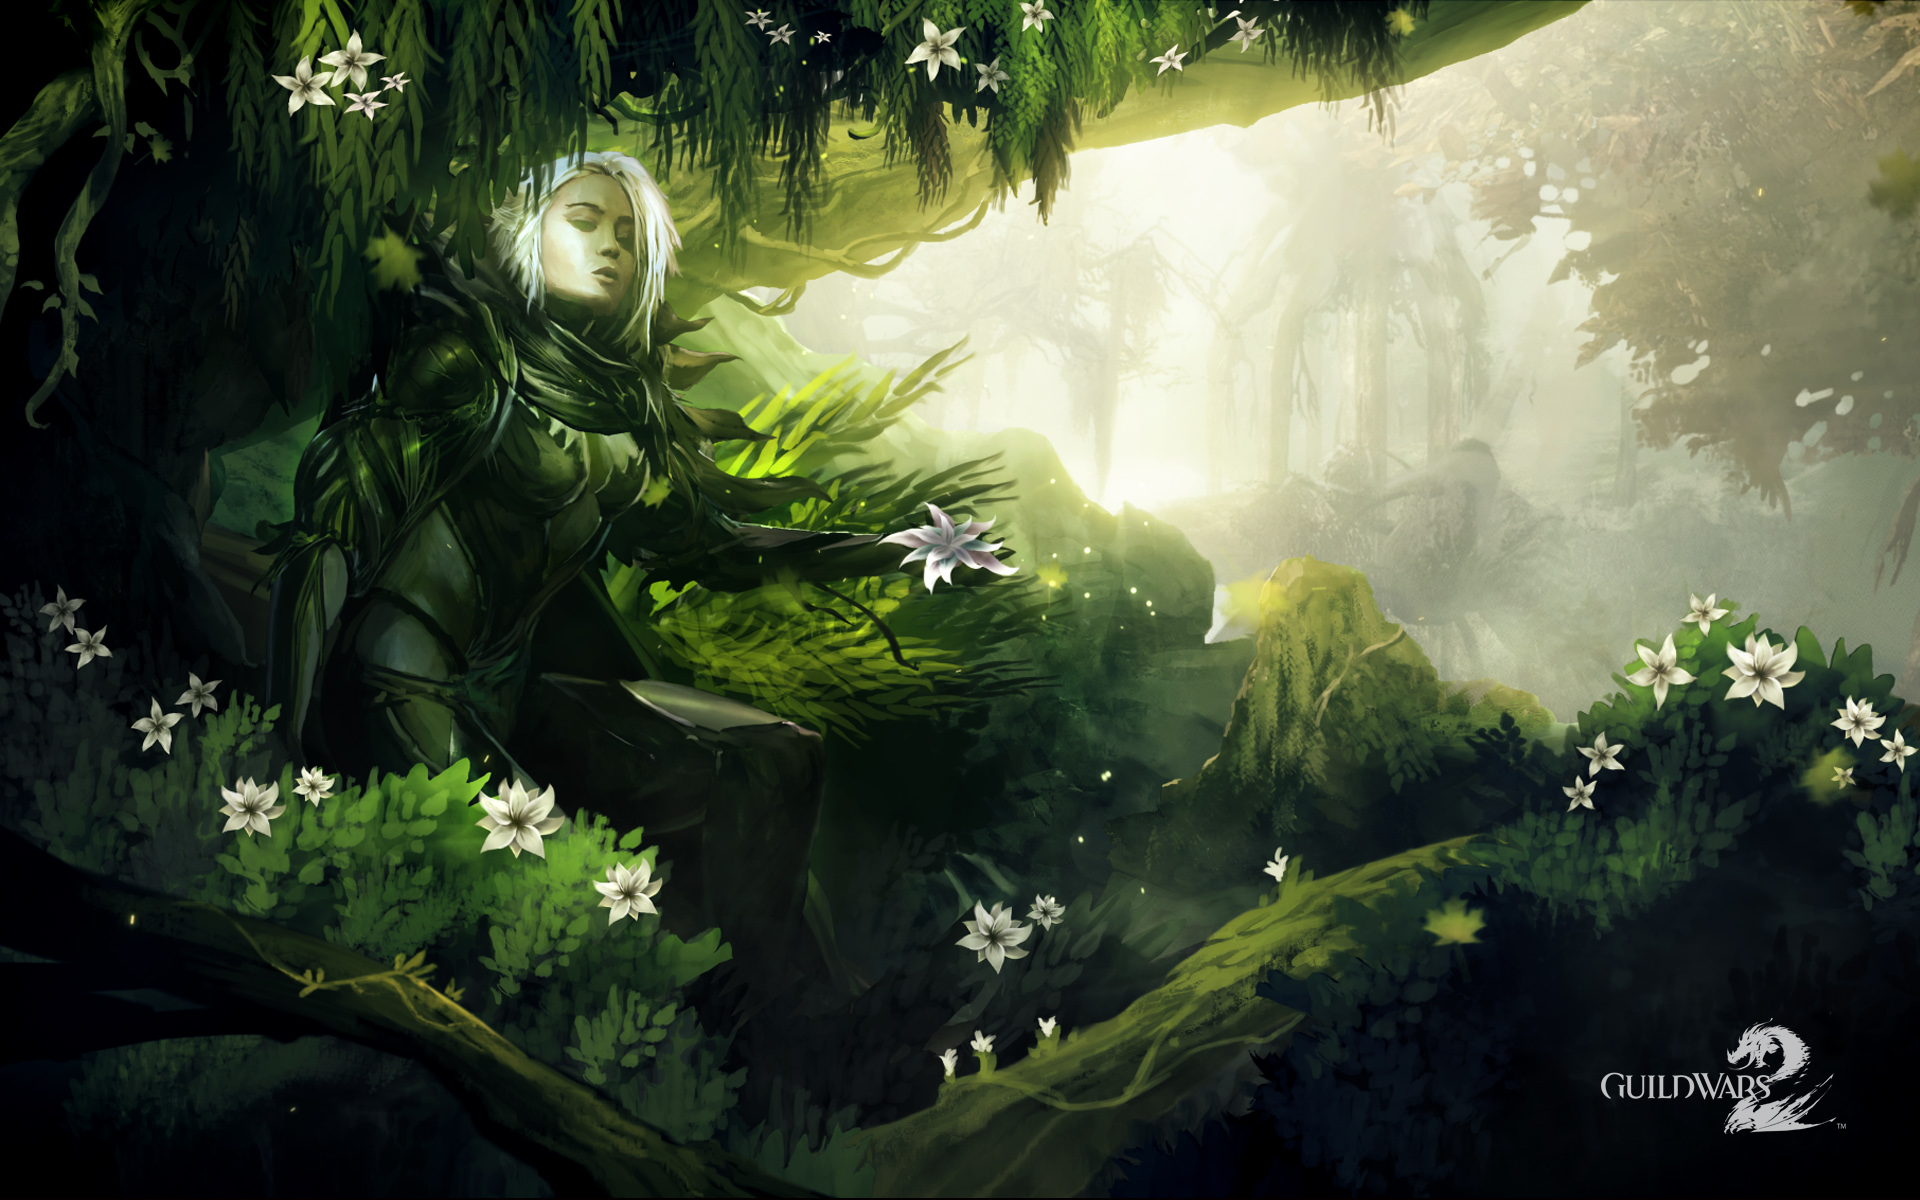 Guild Wars 2 HD Official Wallpapers   MMORPG News   MMOsitecom 1920x1200